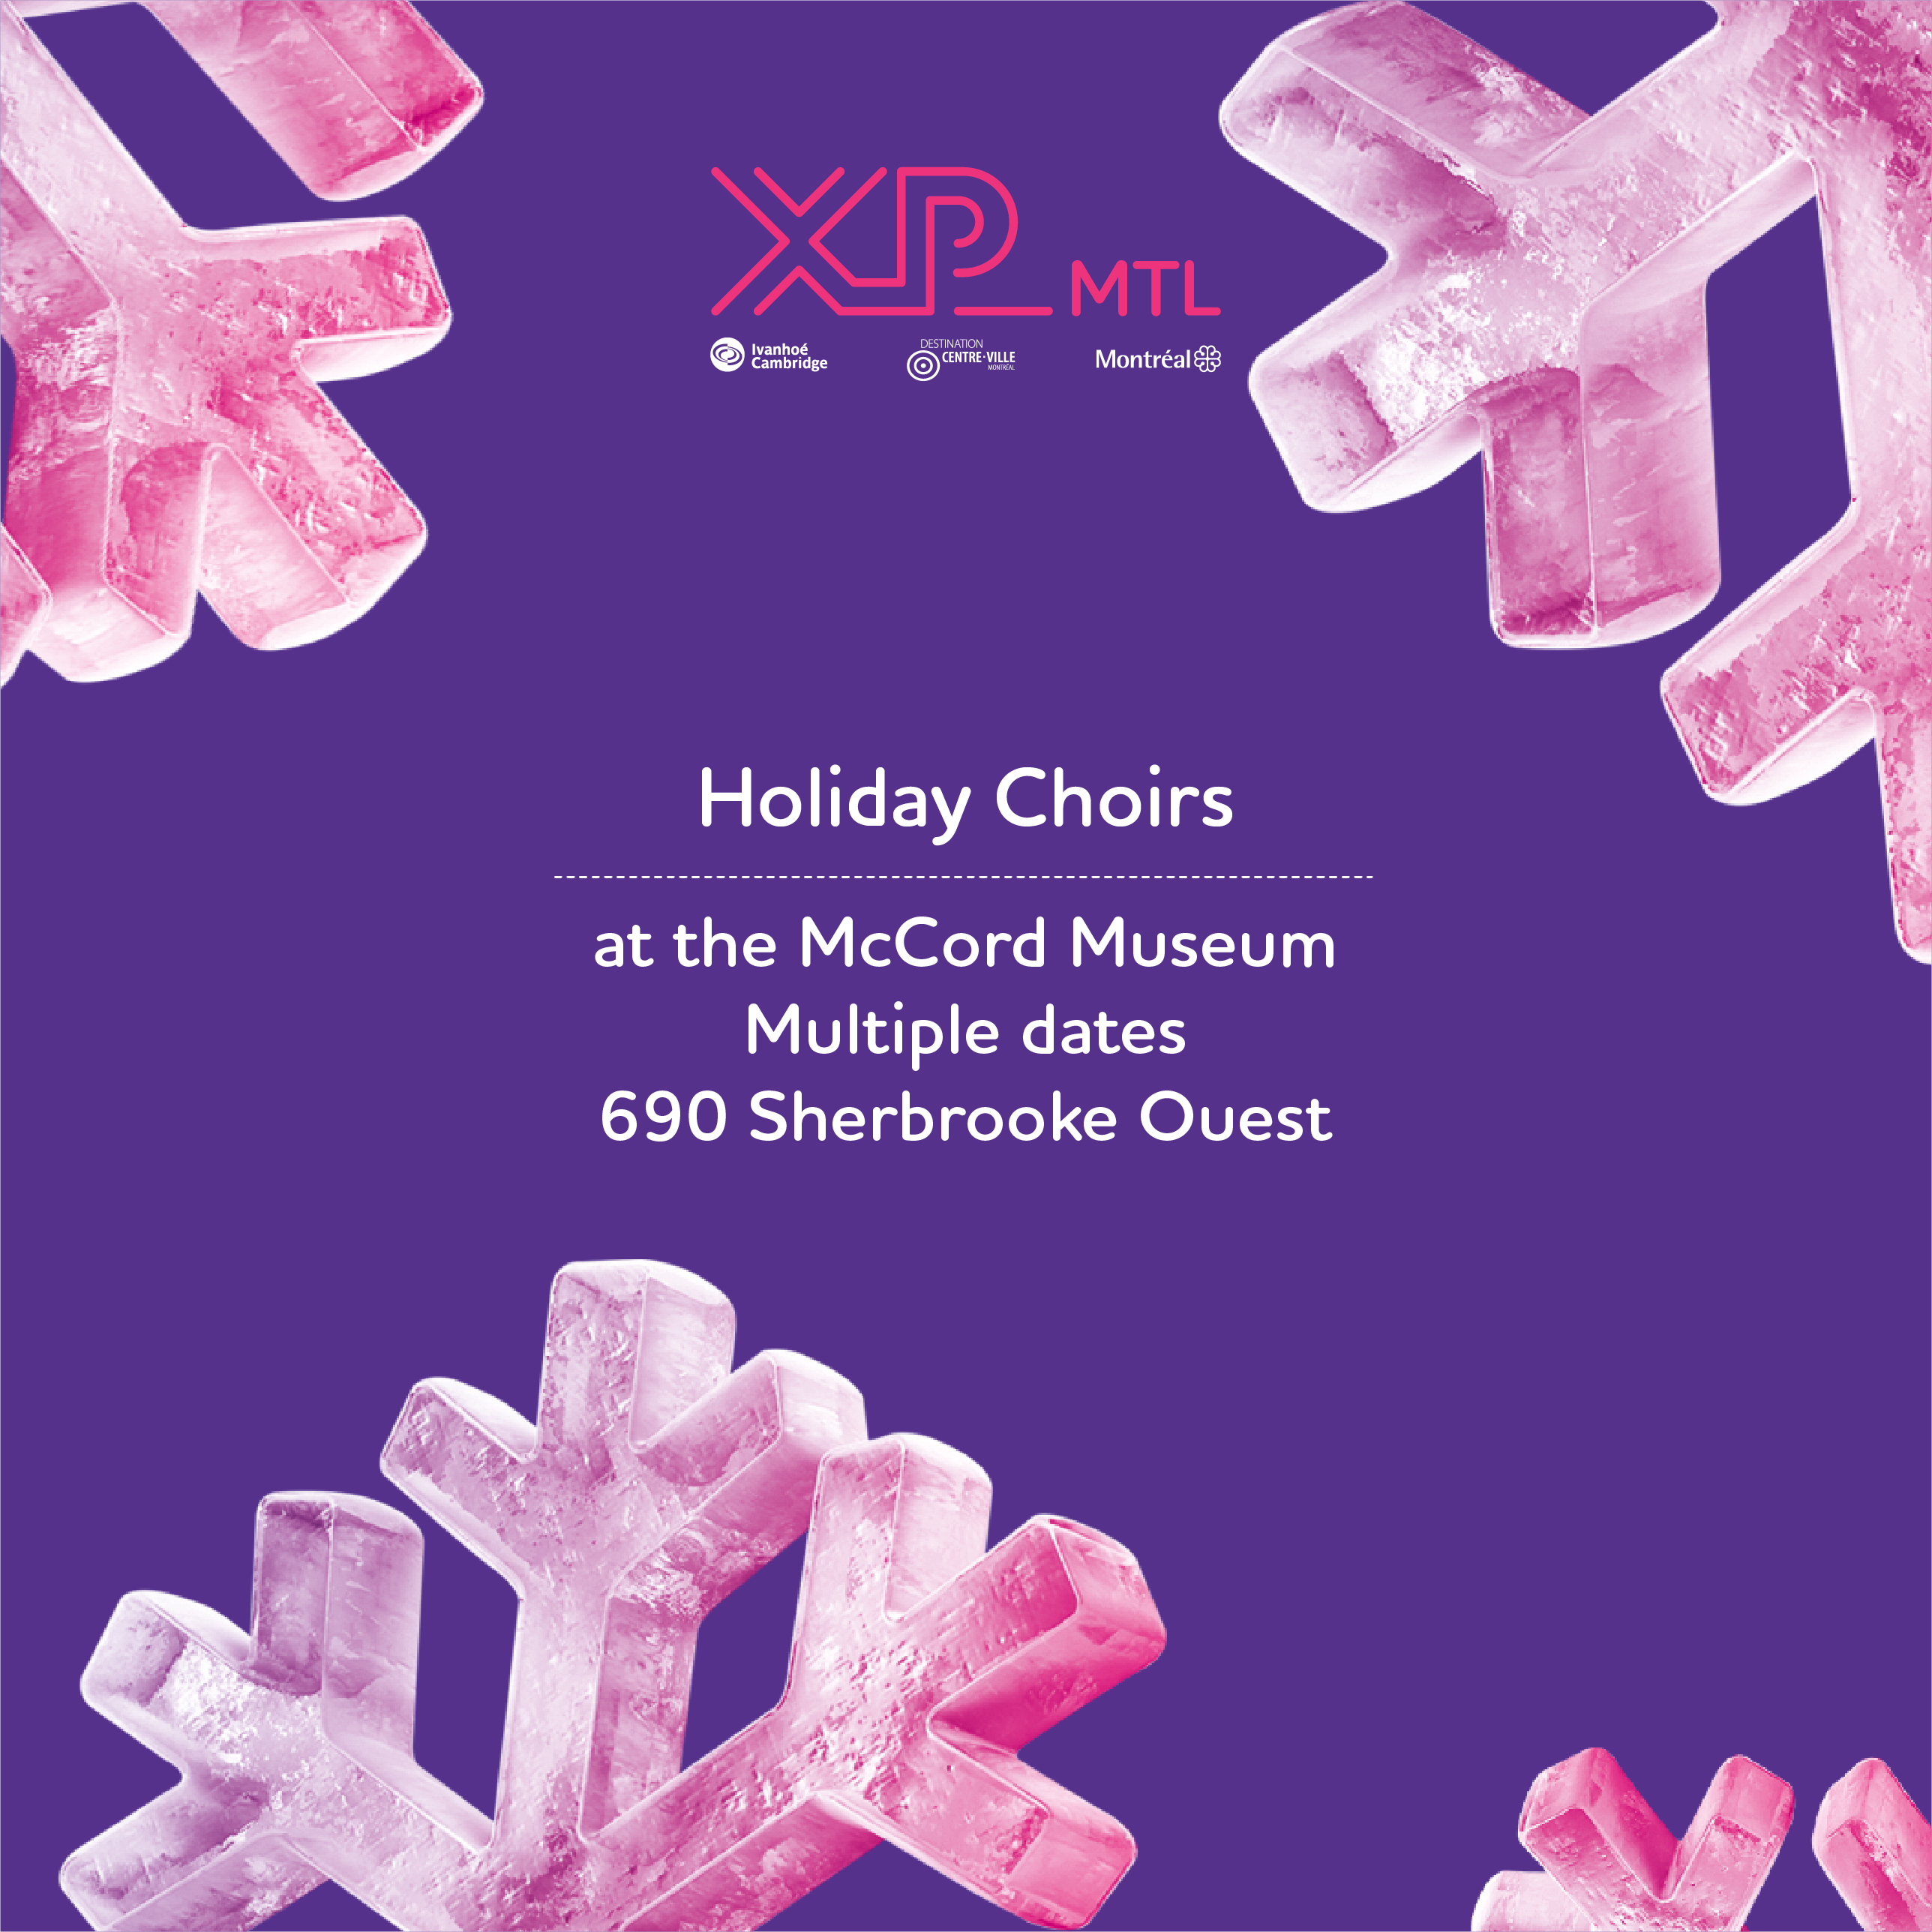 Holidays Choirs at the McCord Museum